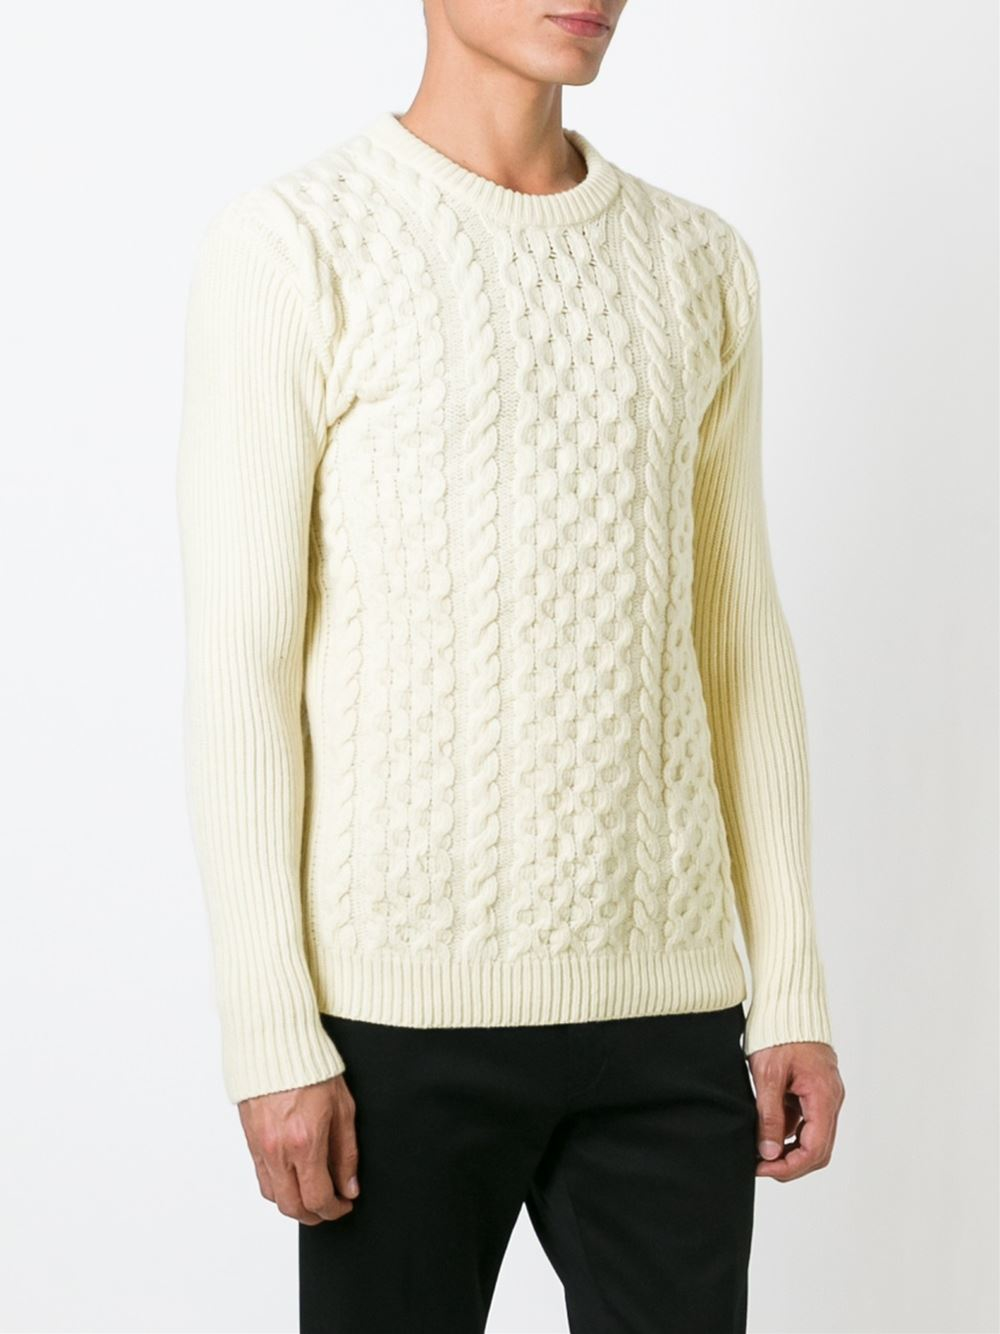 Sweater Knit : Ami cable knit sweater in white for men lyst